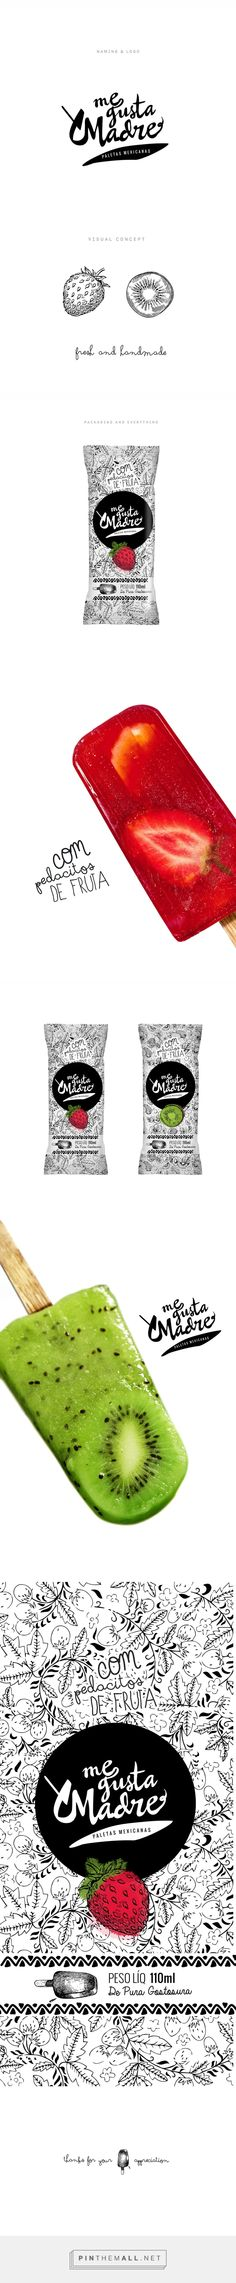 ME GUSTA MADRE PALETAS MEXICANAS - ICE CREAM on Behance by Brain&Bros DZ curated by Packaging Diva PD. End your day with some great tasty ice cream packaging : )